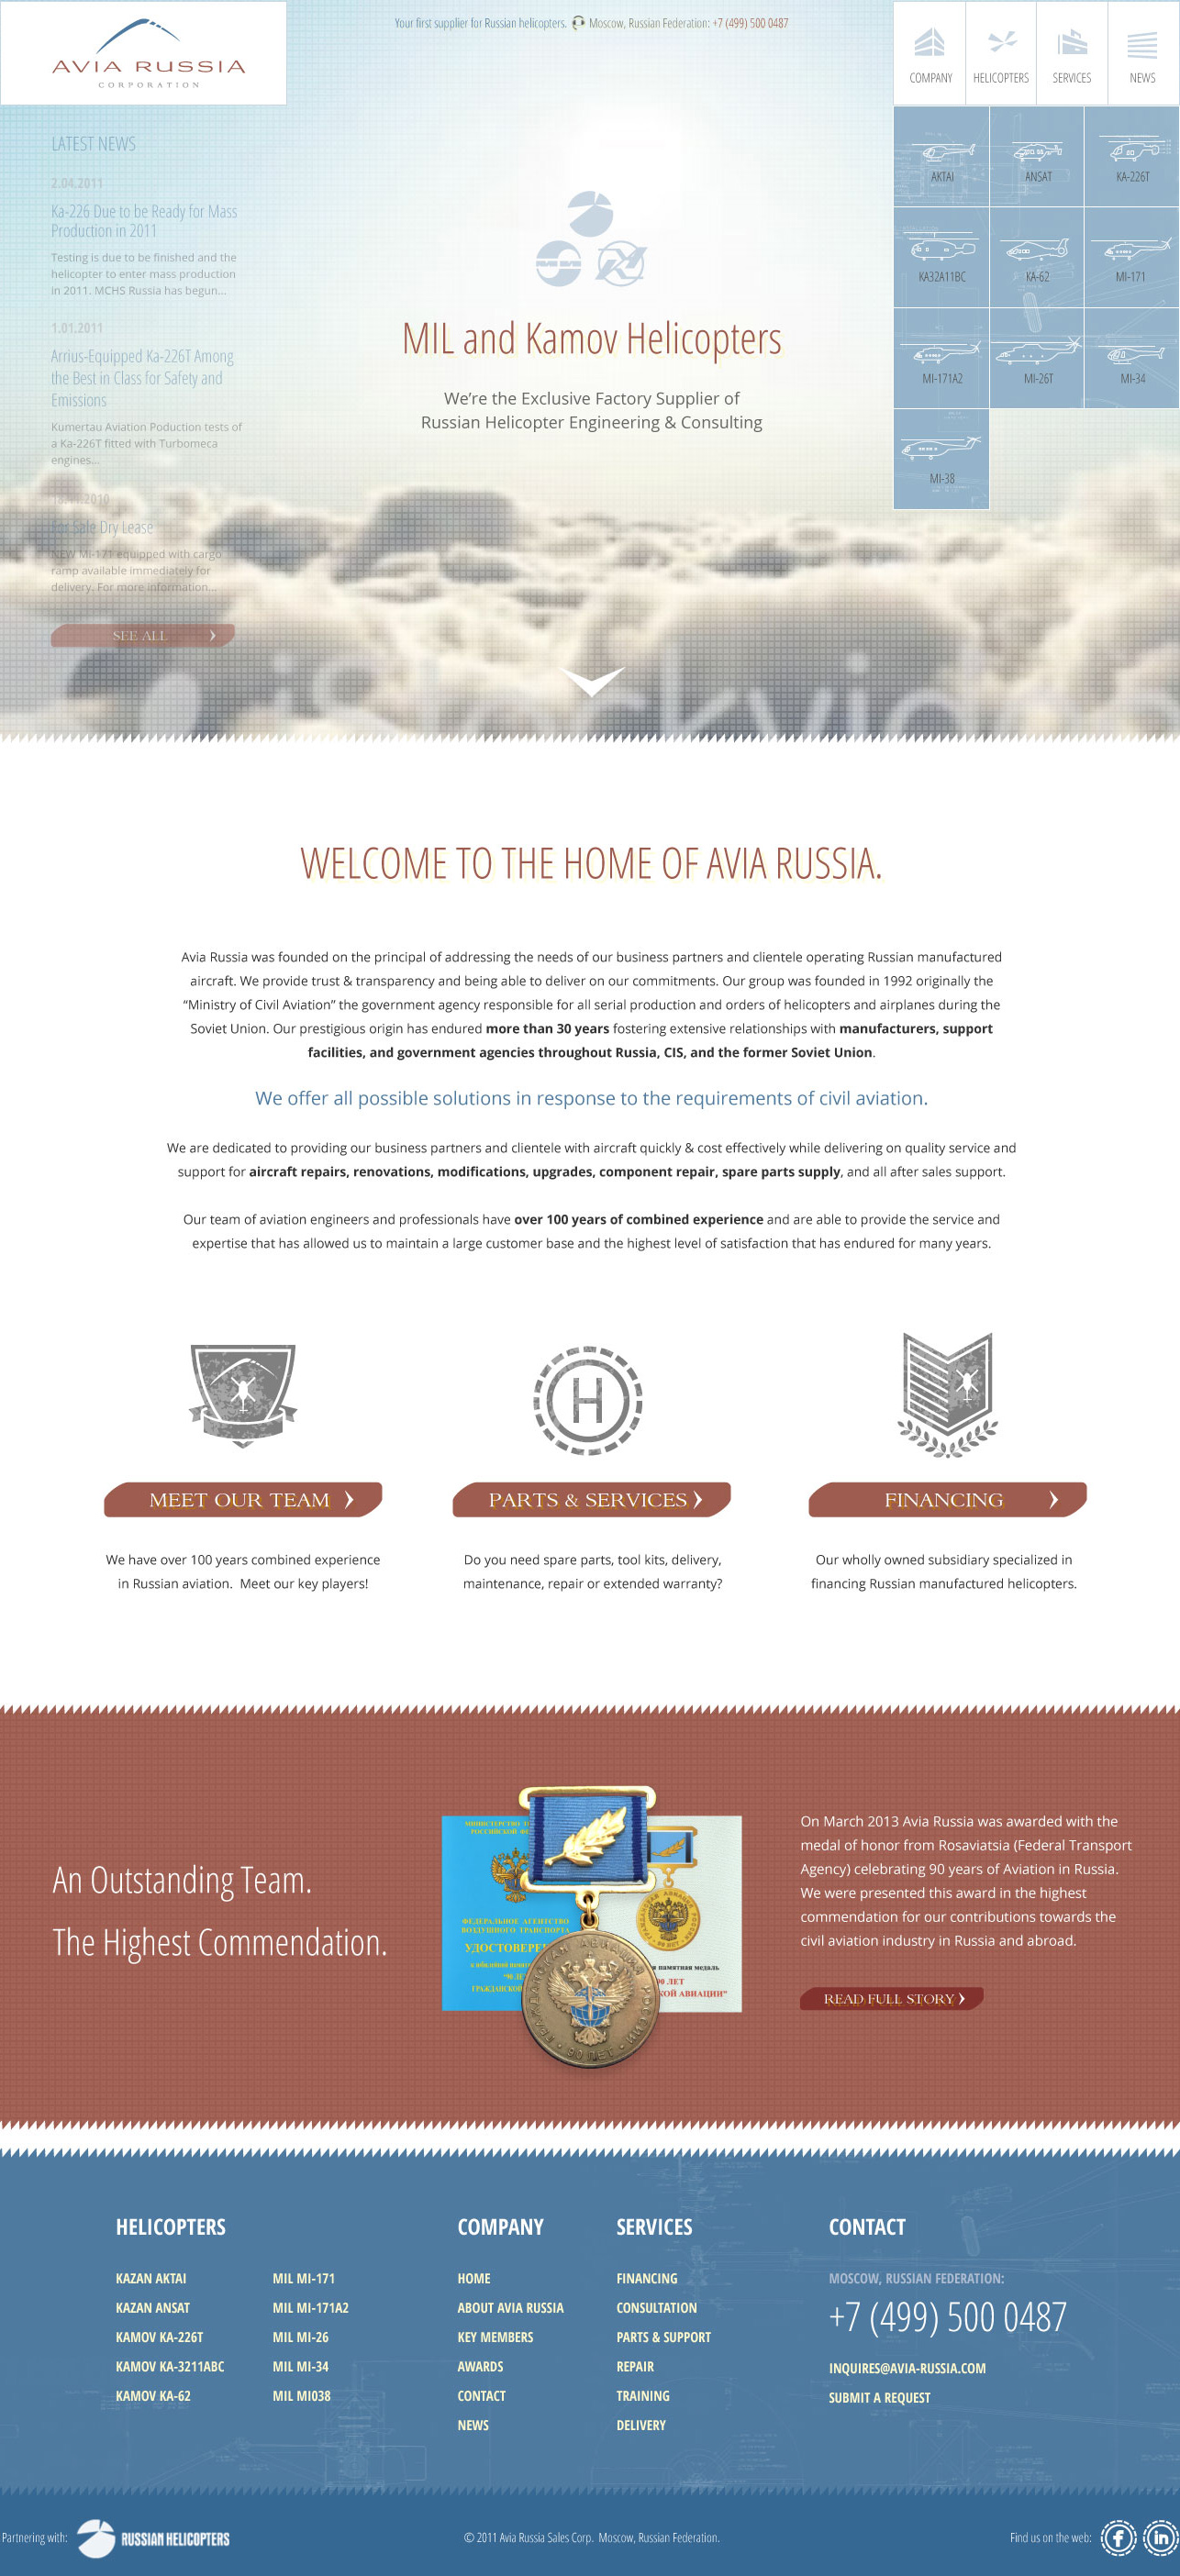 Avia Russia Website Design